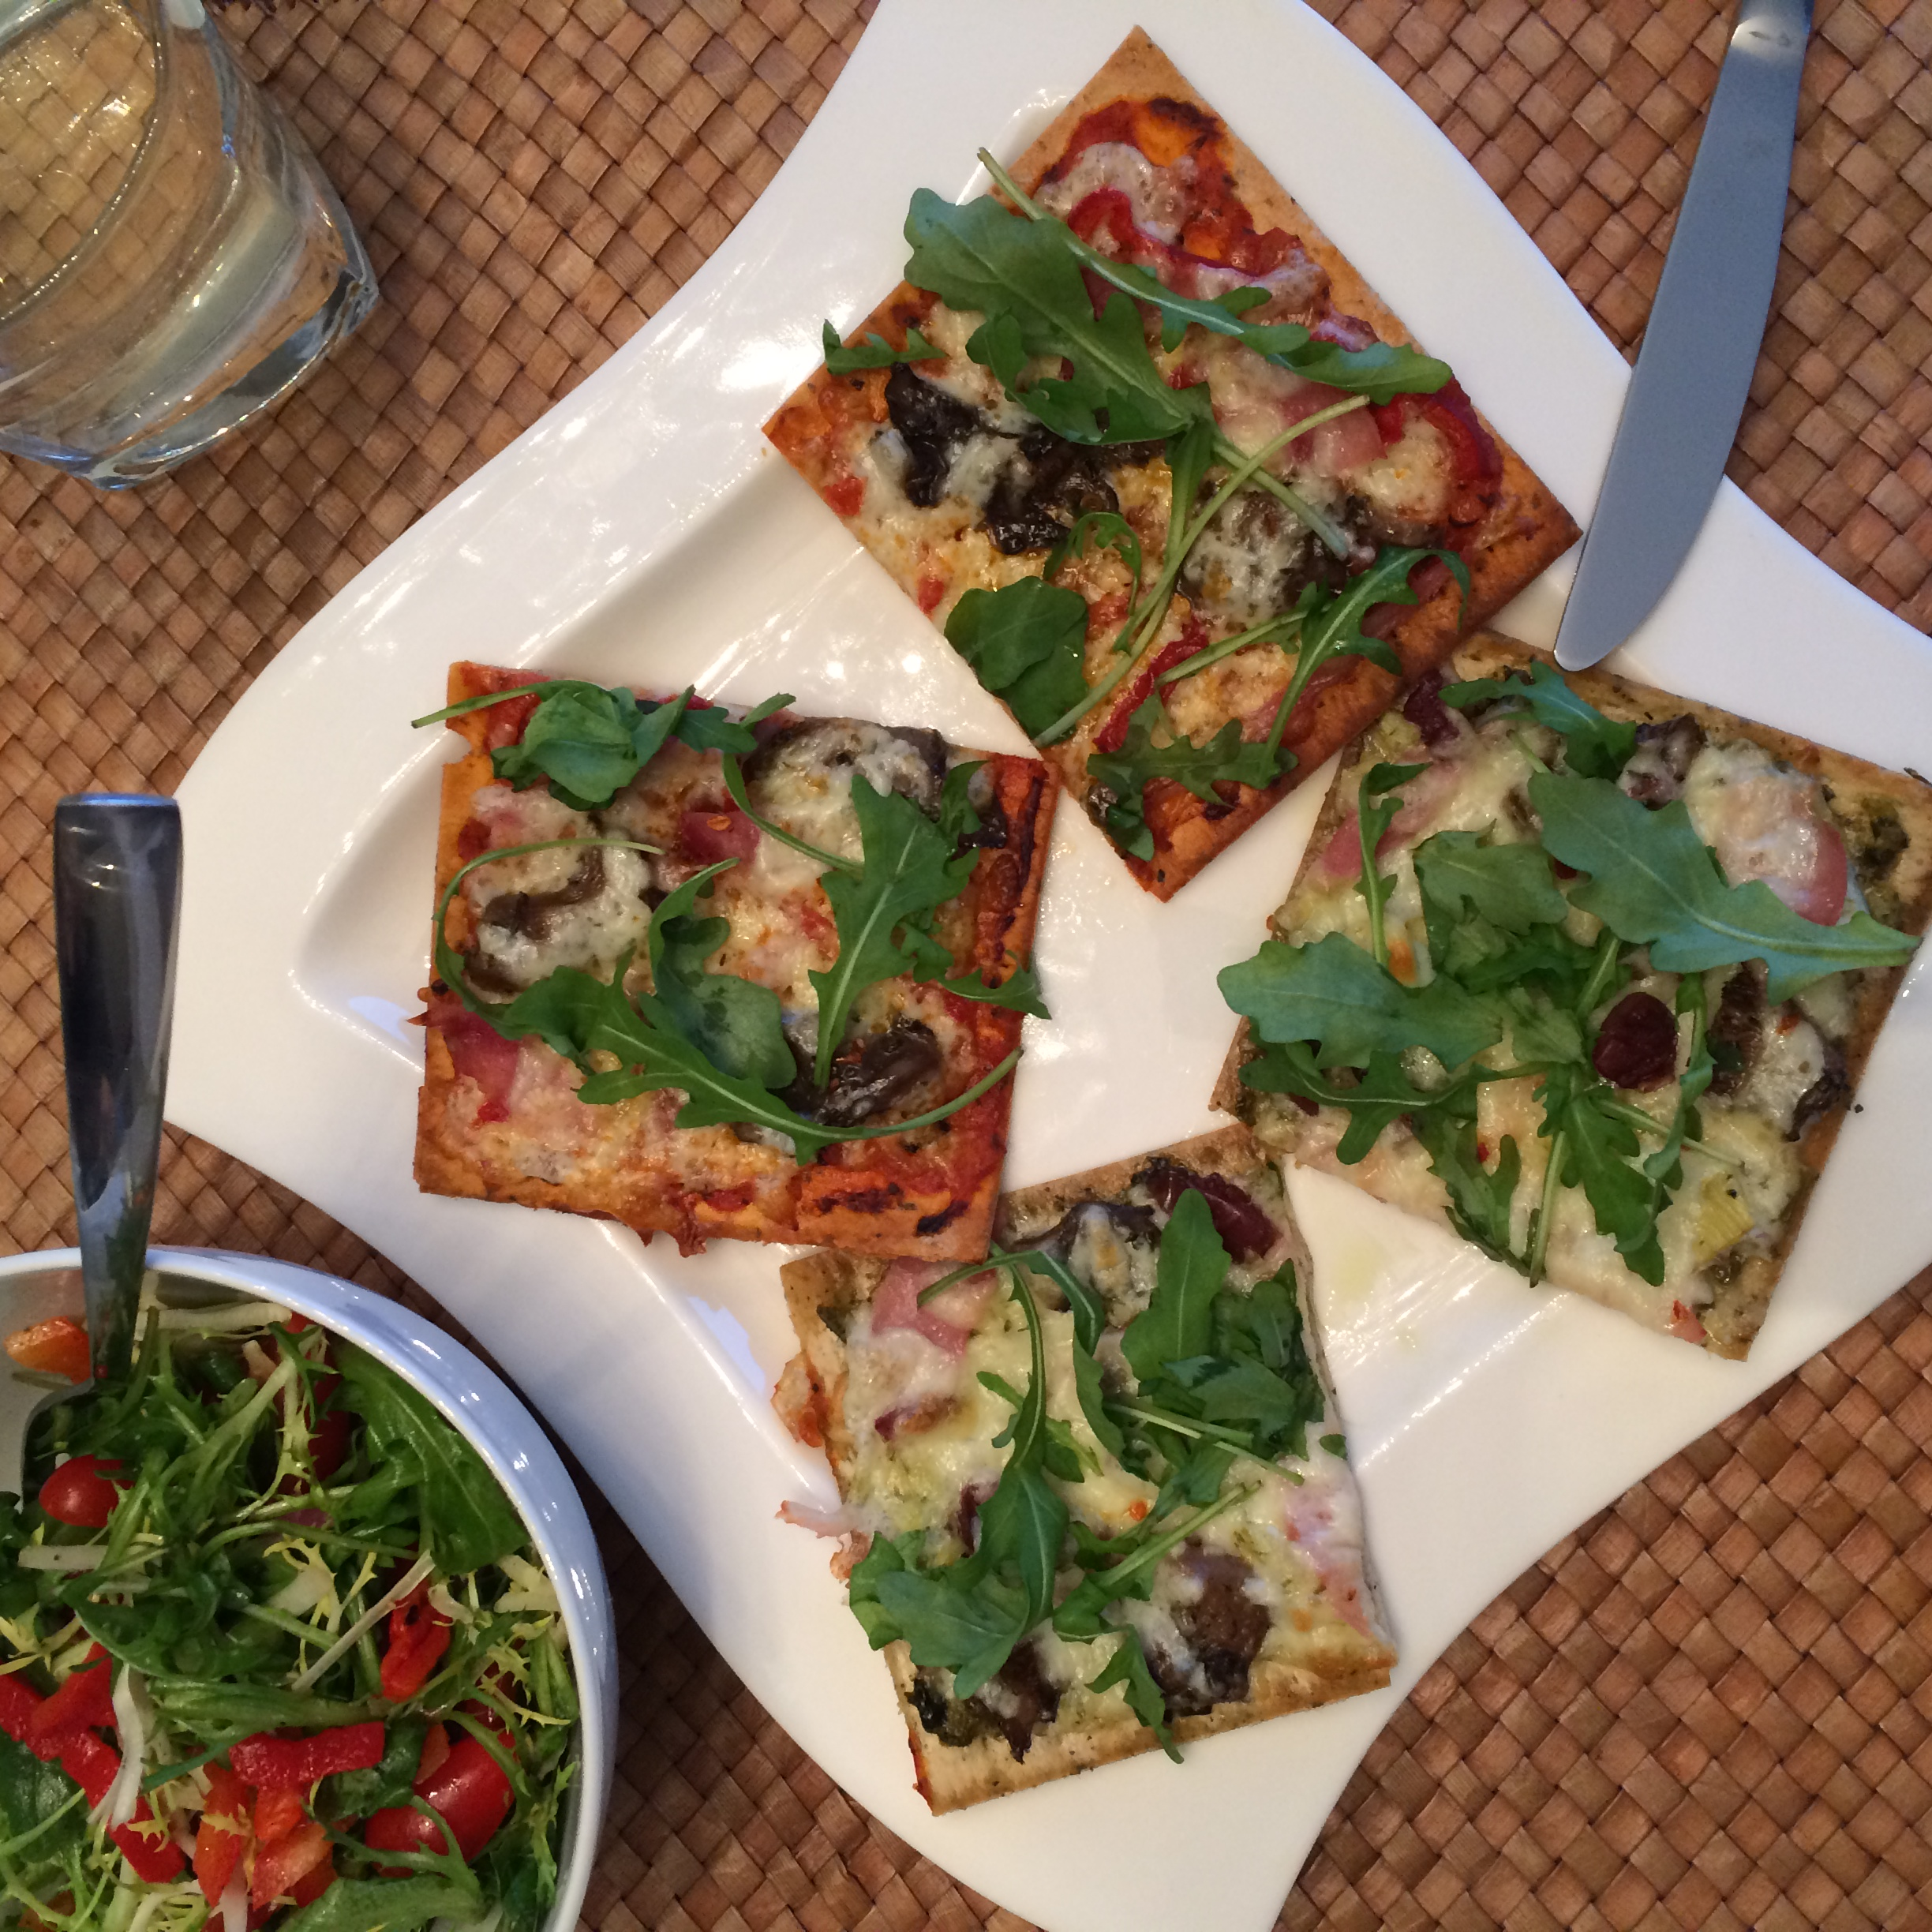 An easy and delicious home prepared dinner to share withfriends and family, now I'll always want a thin-crust pizza to start the year!